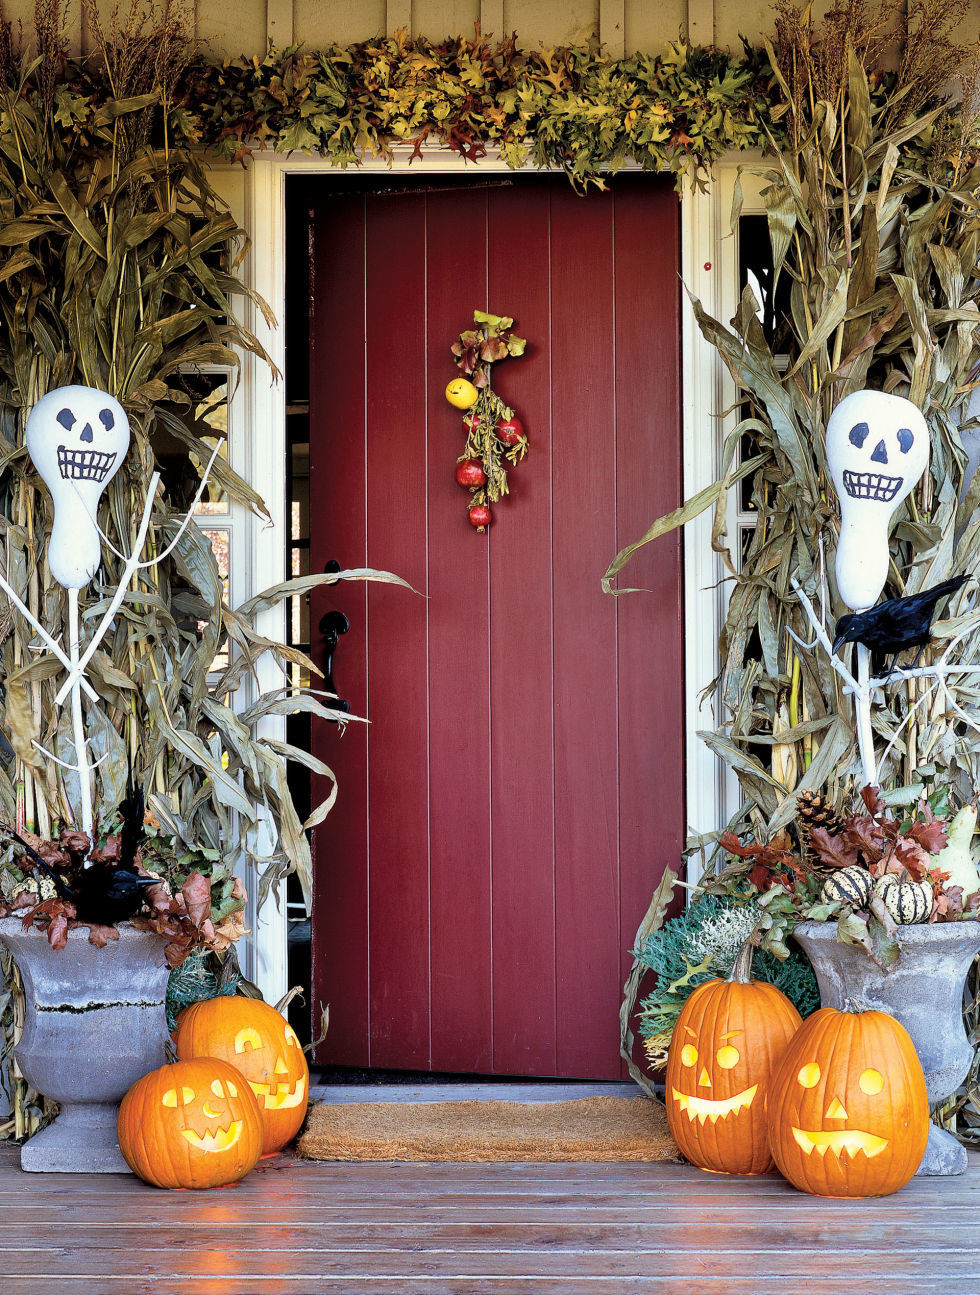 Outdoor Halloween Decorations 25 Elegant Halloween Decorations Ideas Magment